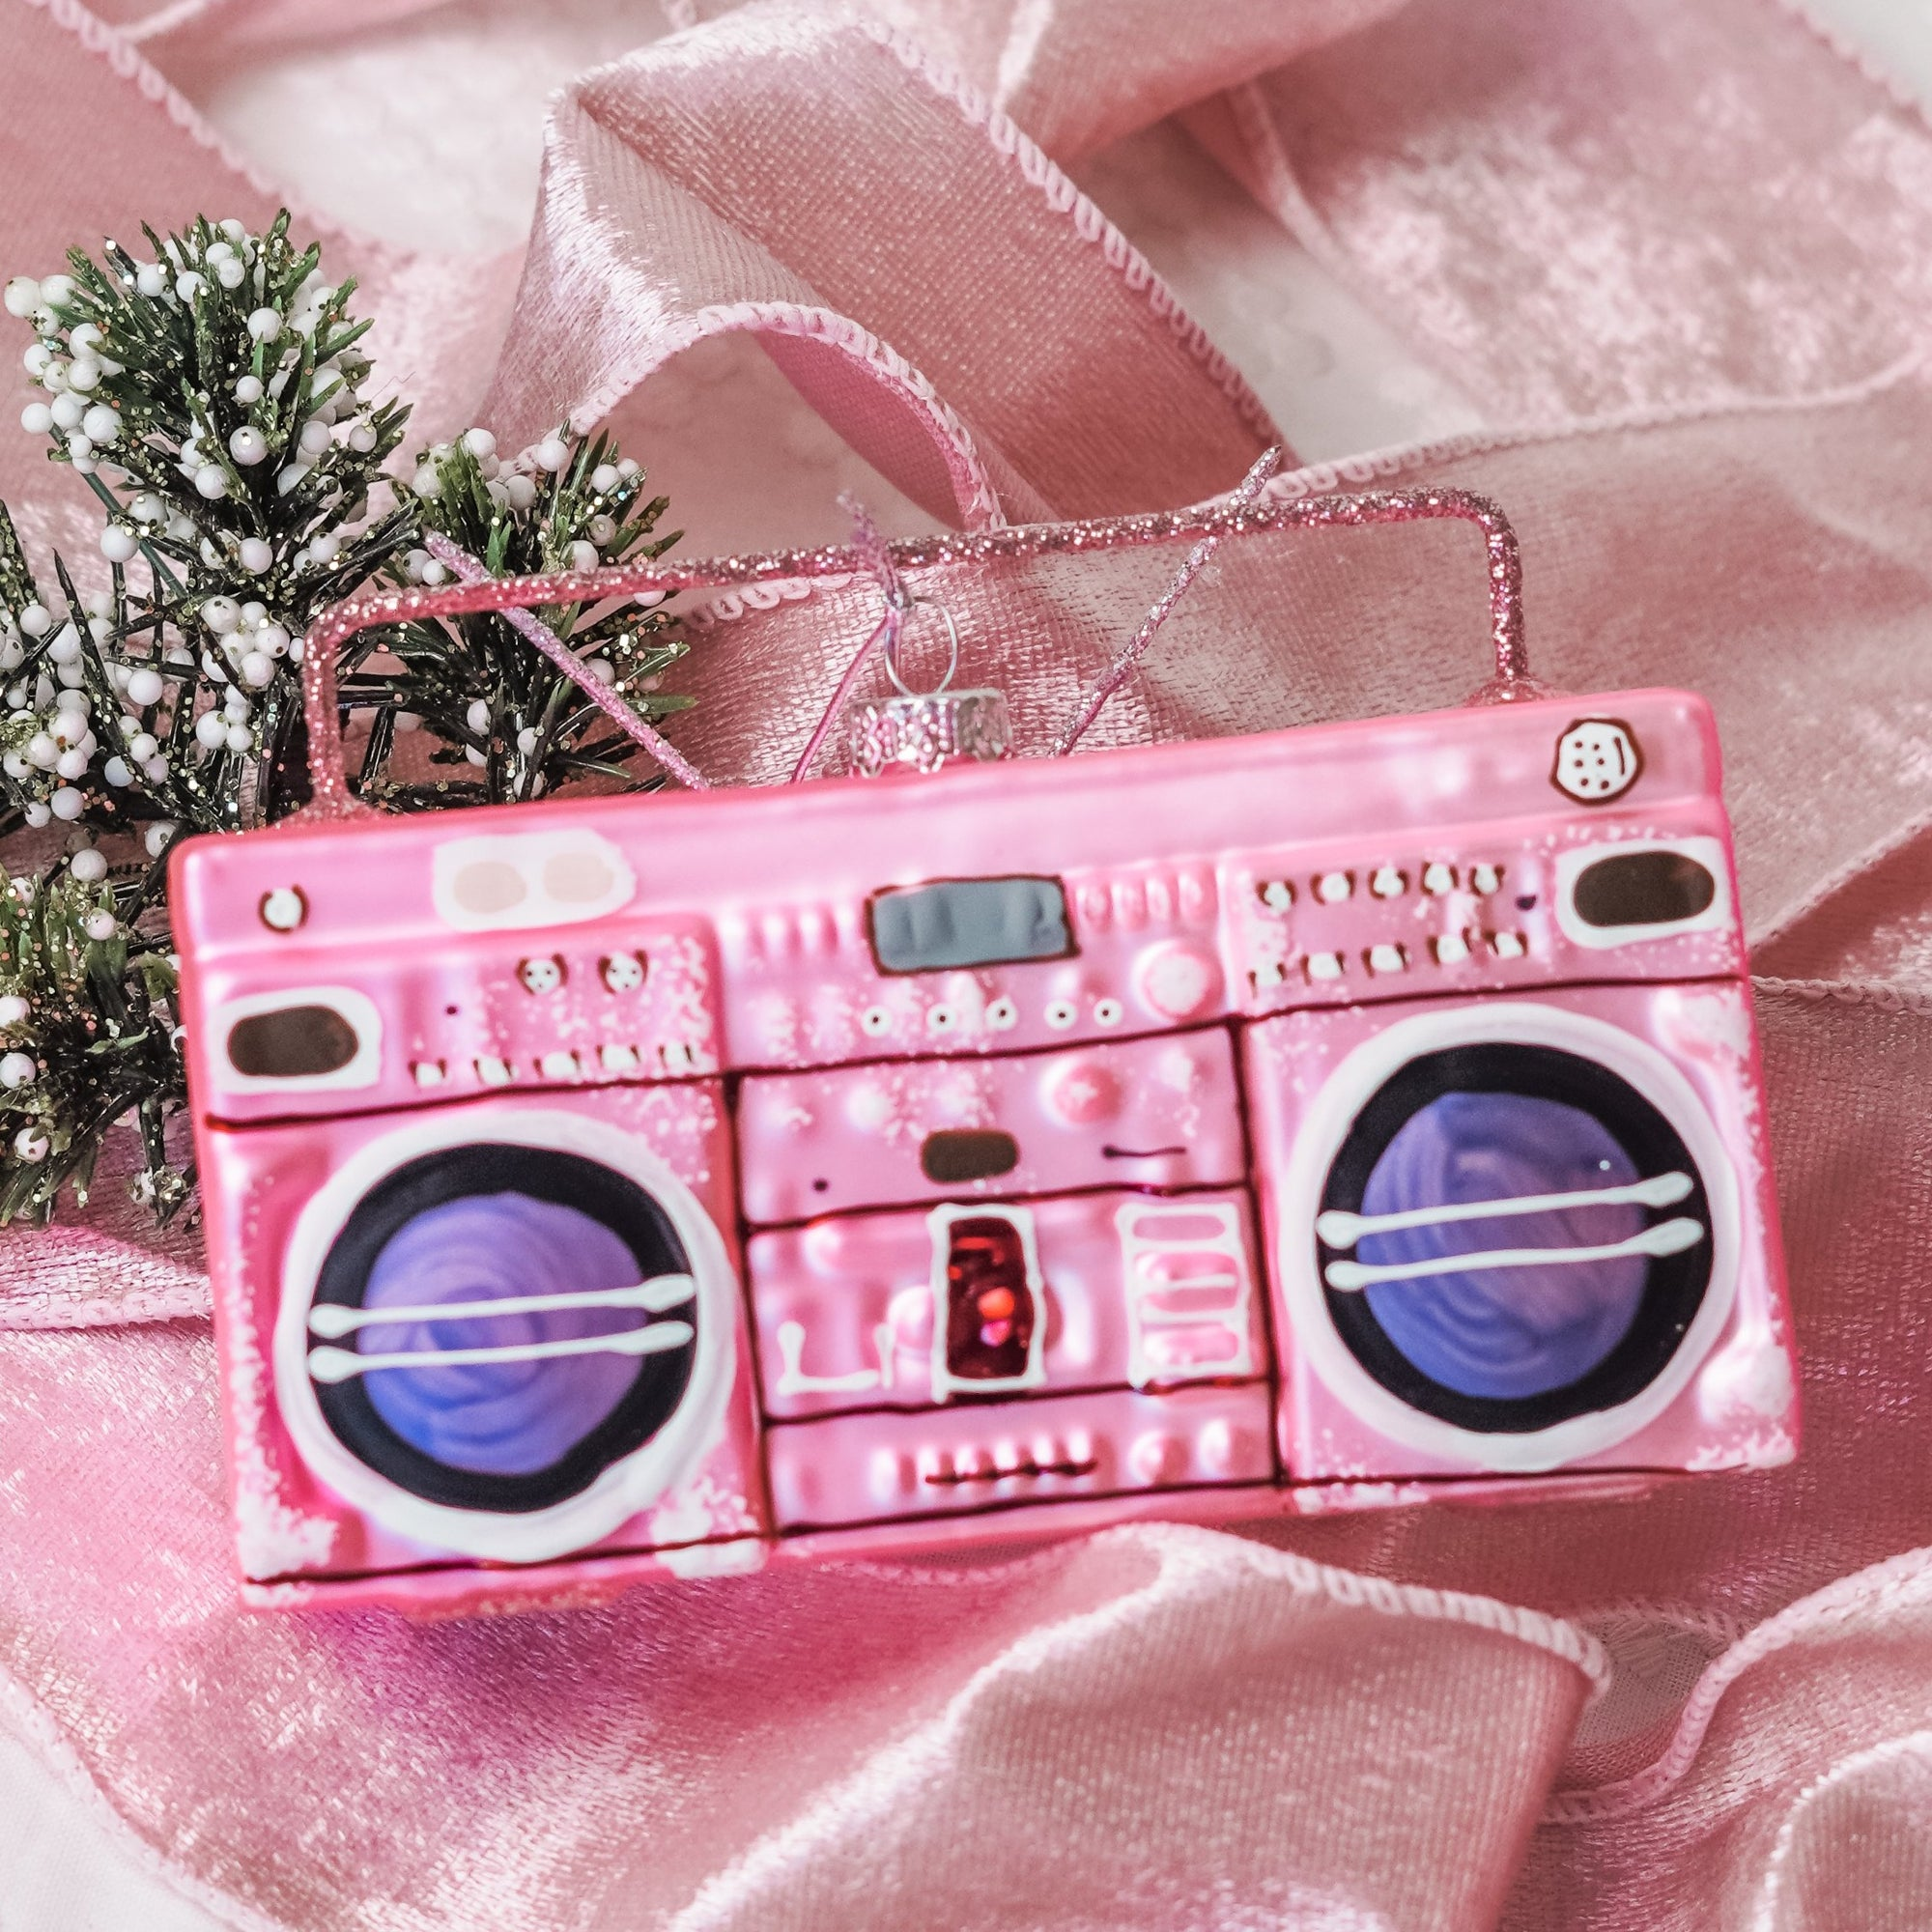 Remember when you and your girlfriends got your groove on to tunes booming out of your boombox? Celebrate the season with this nostalgic Boombox Ornament in Pink - a wonderful addition to your Christmas ornament collection this year!  Approximately 5 in. wide by 3 in. tall Made of glass.  Imported.